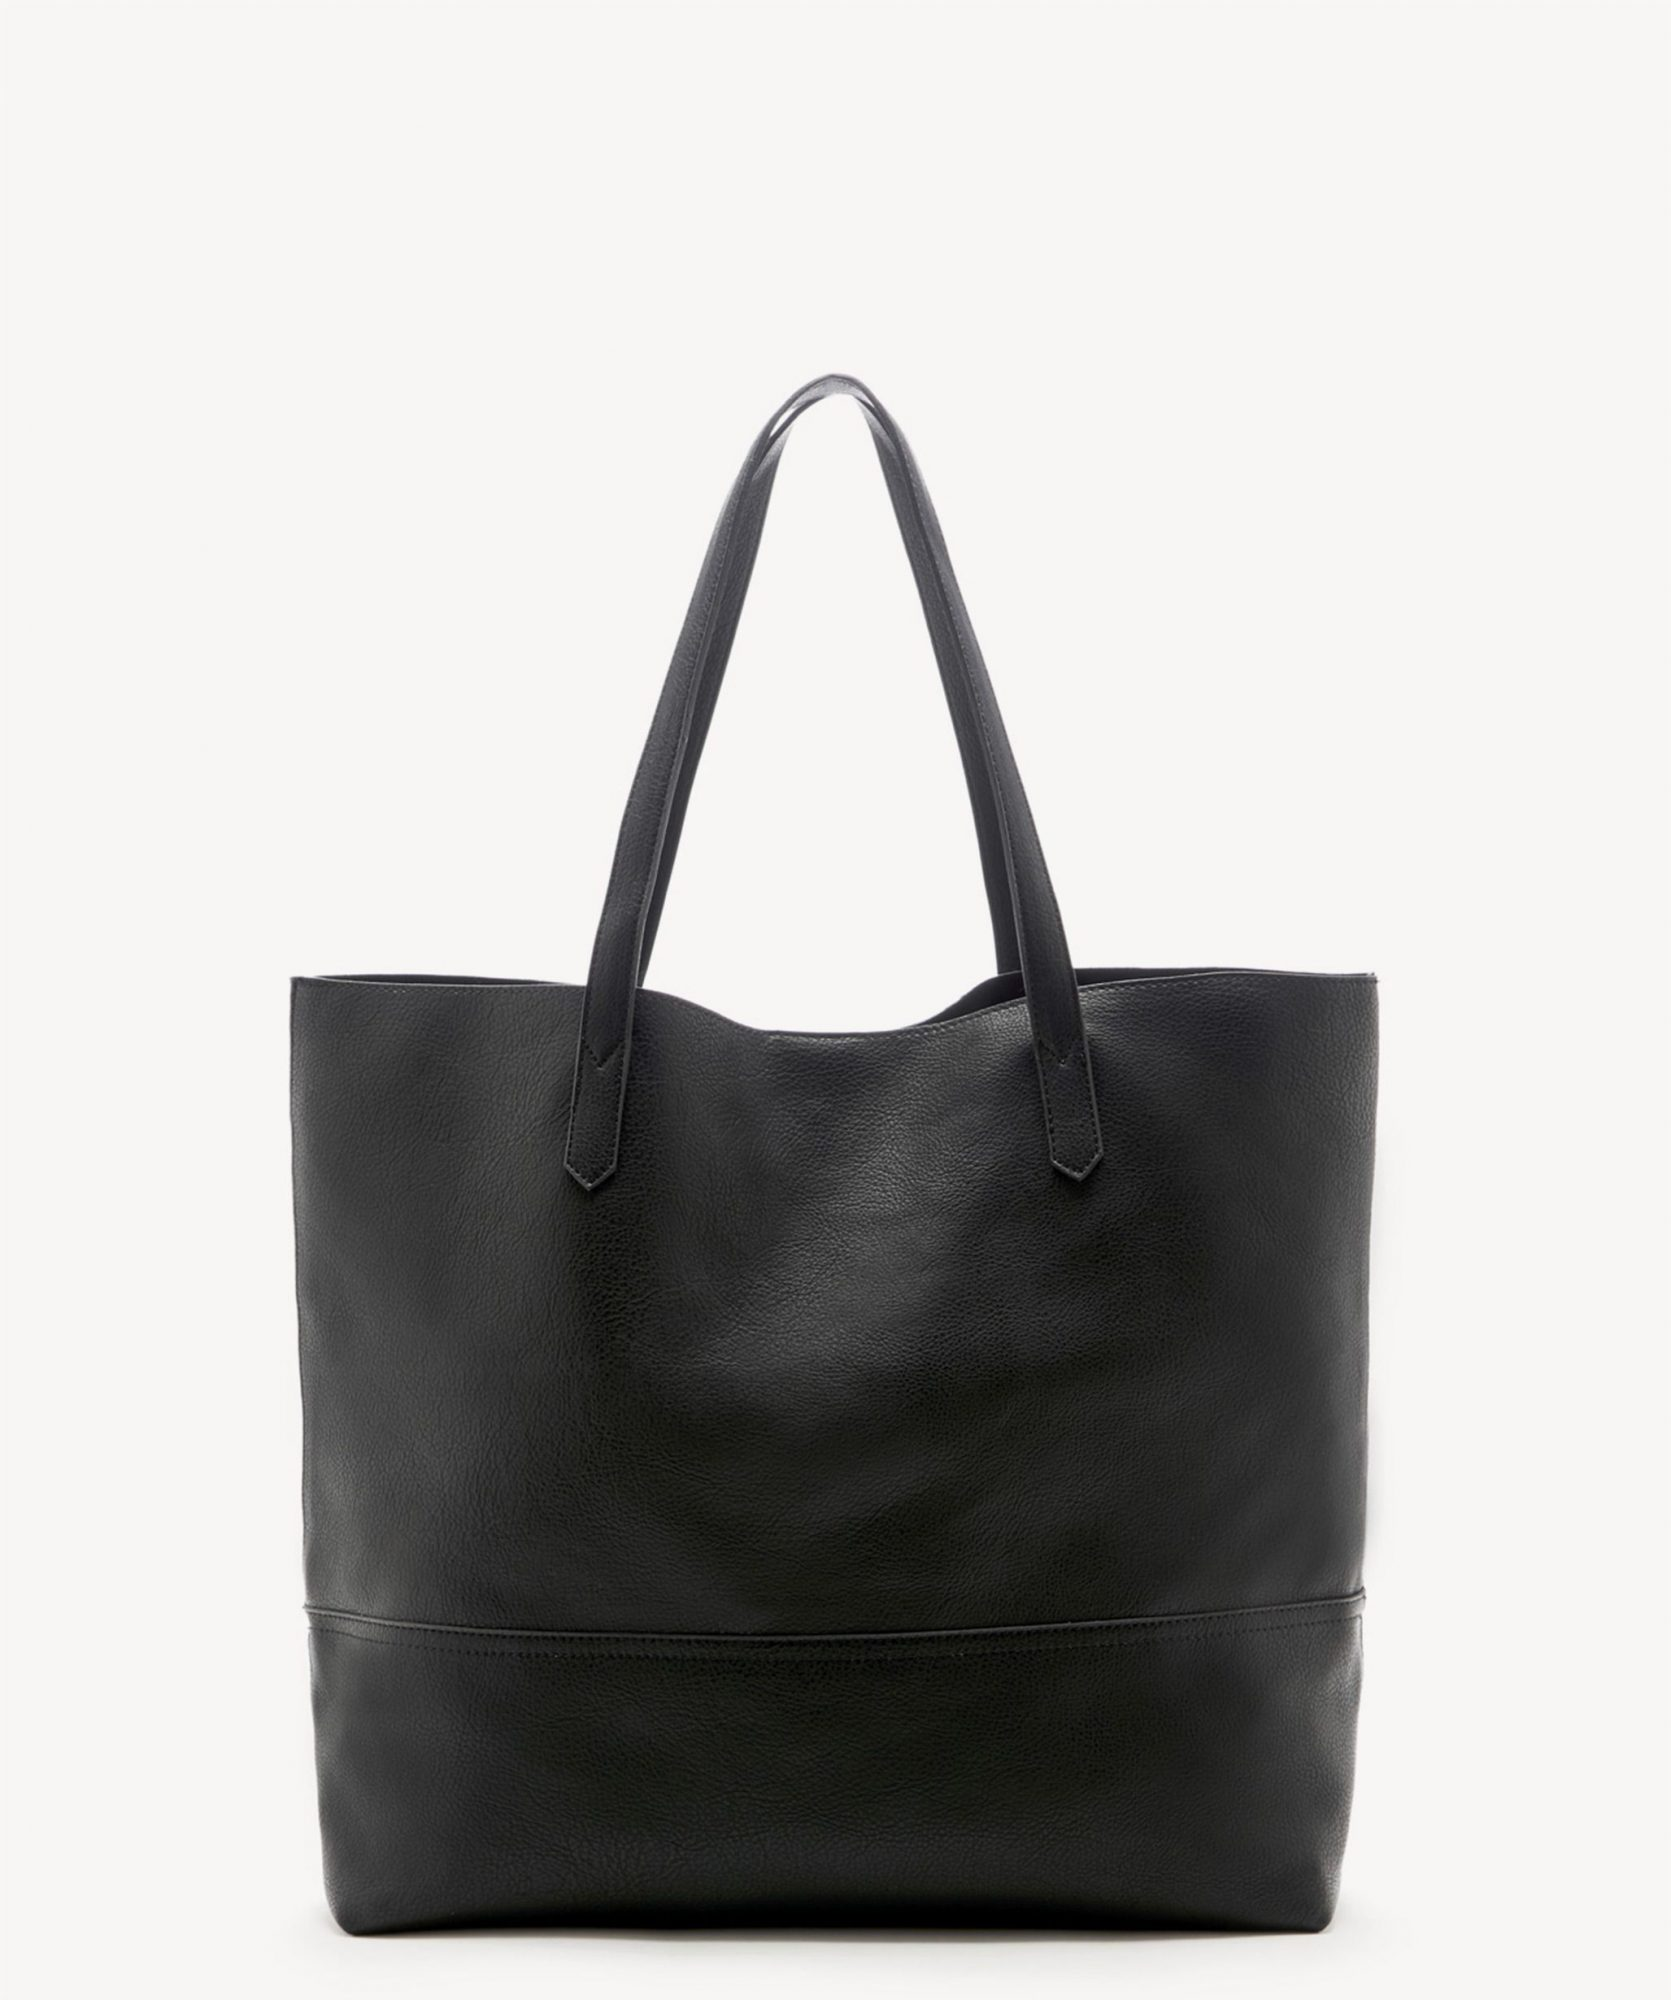 Sole Society black faux leather bag